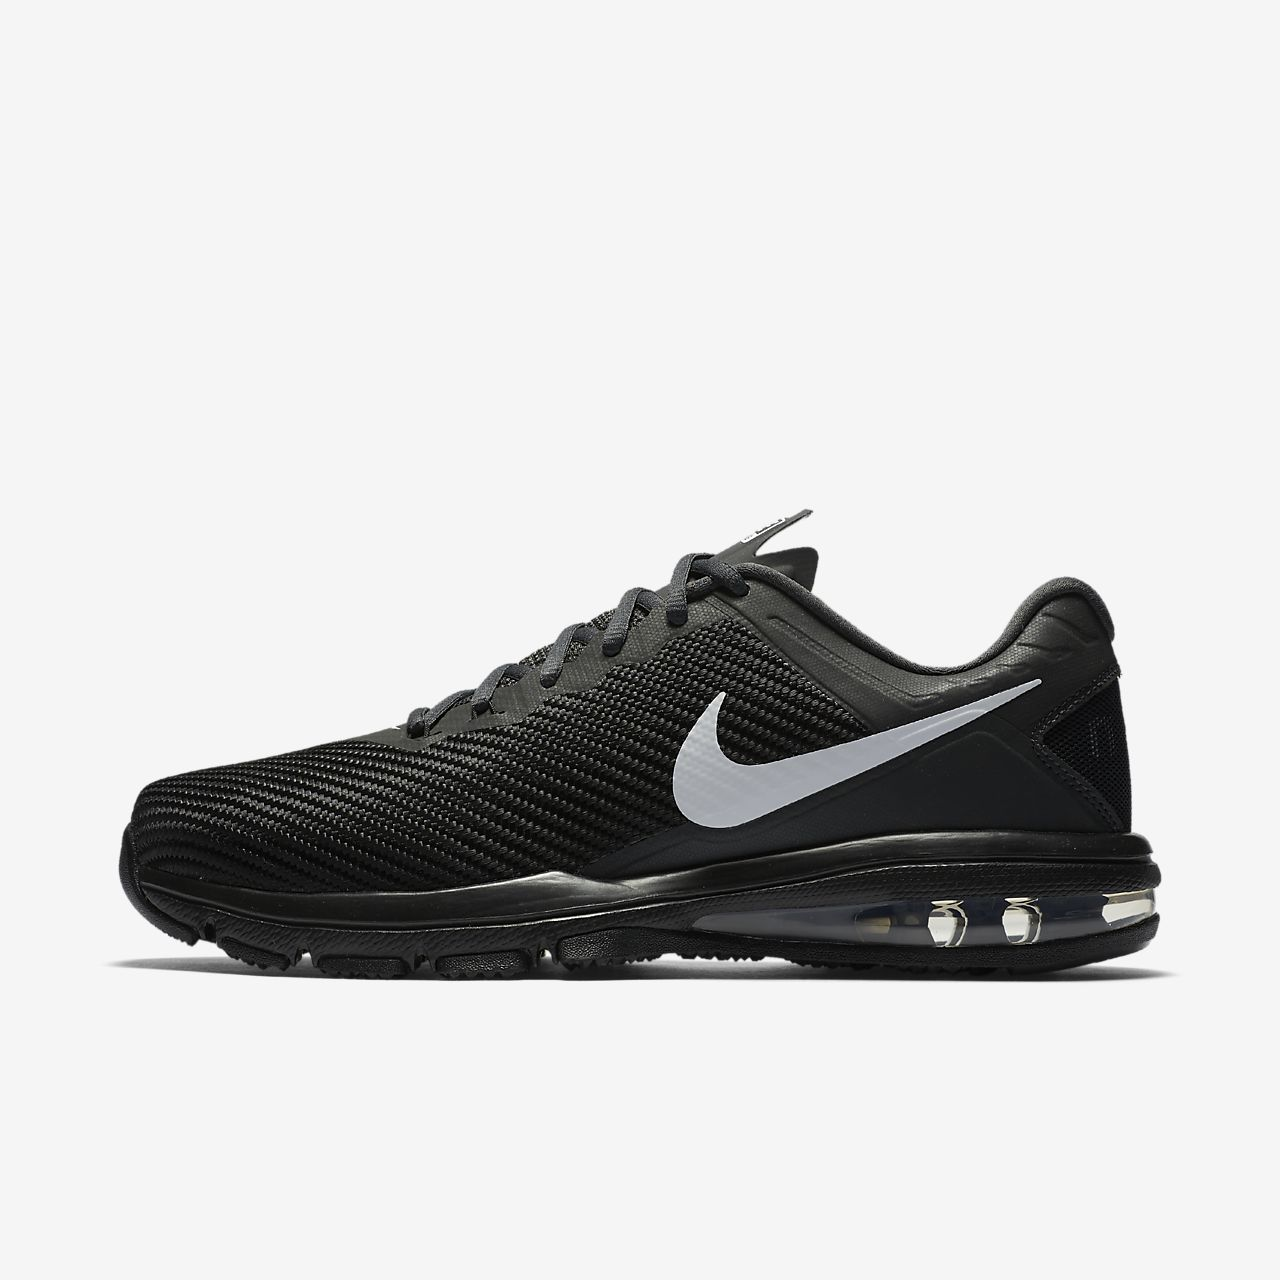 official photos 56960 c4ea5 ... Nike Air Max Full Ride TR 1.5 Men s Training Shoe